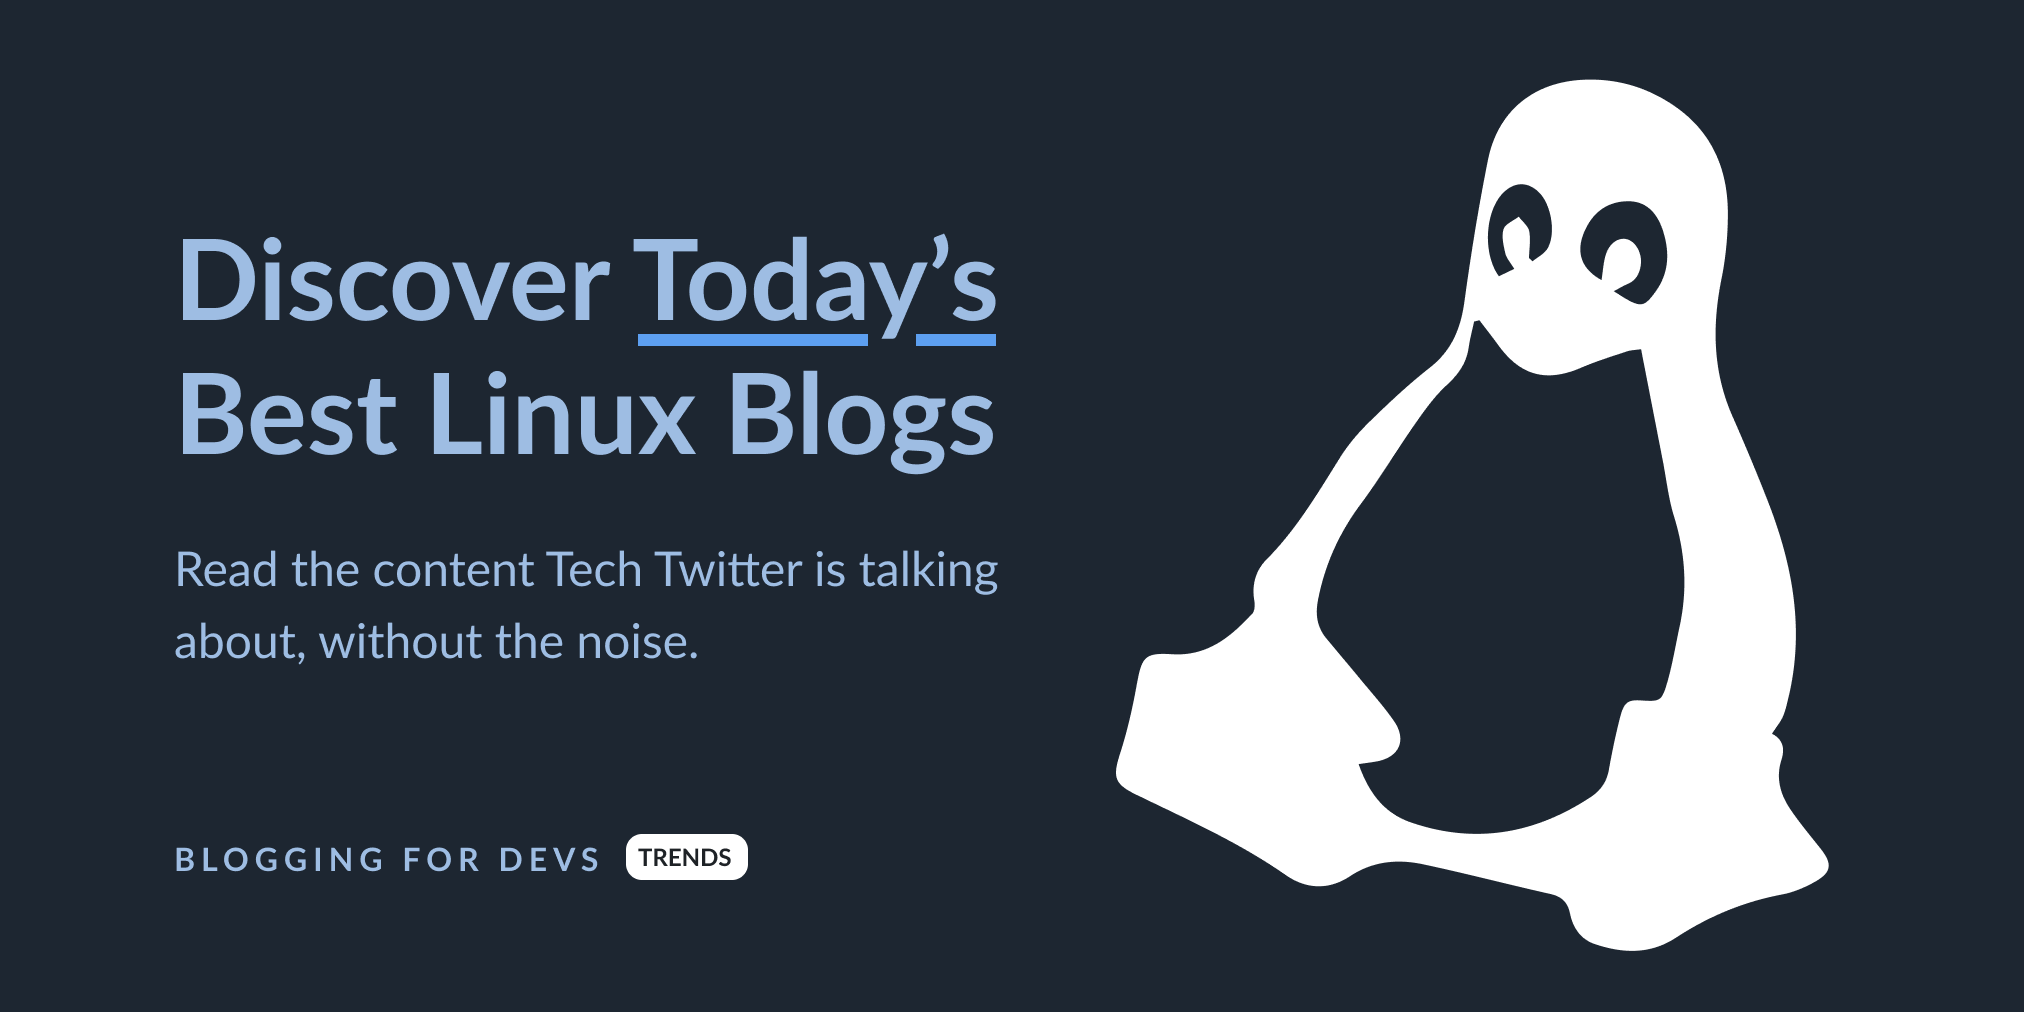 Best Linux blogs